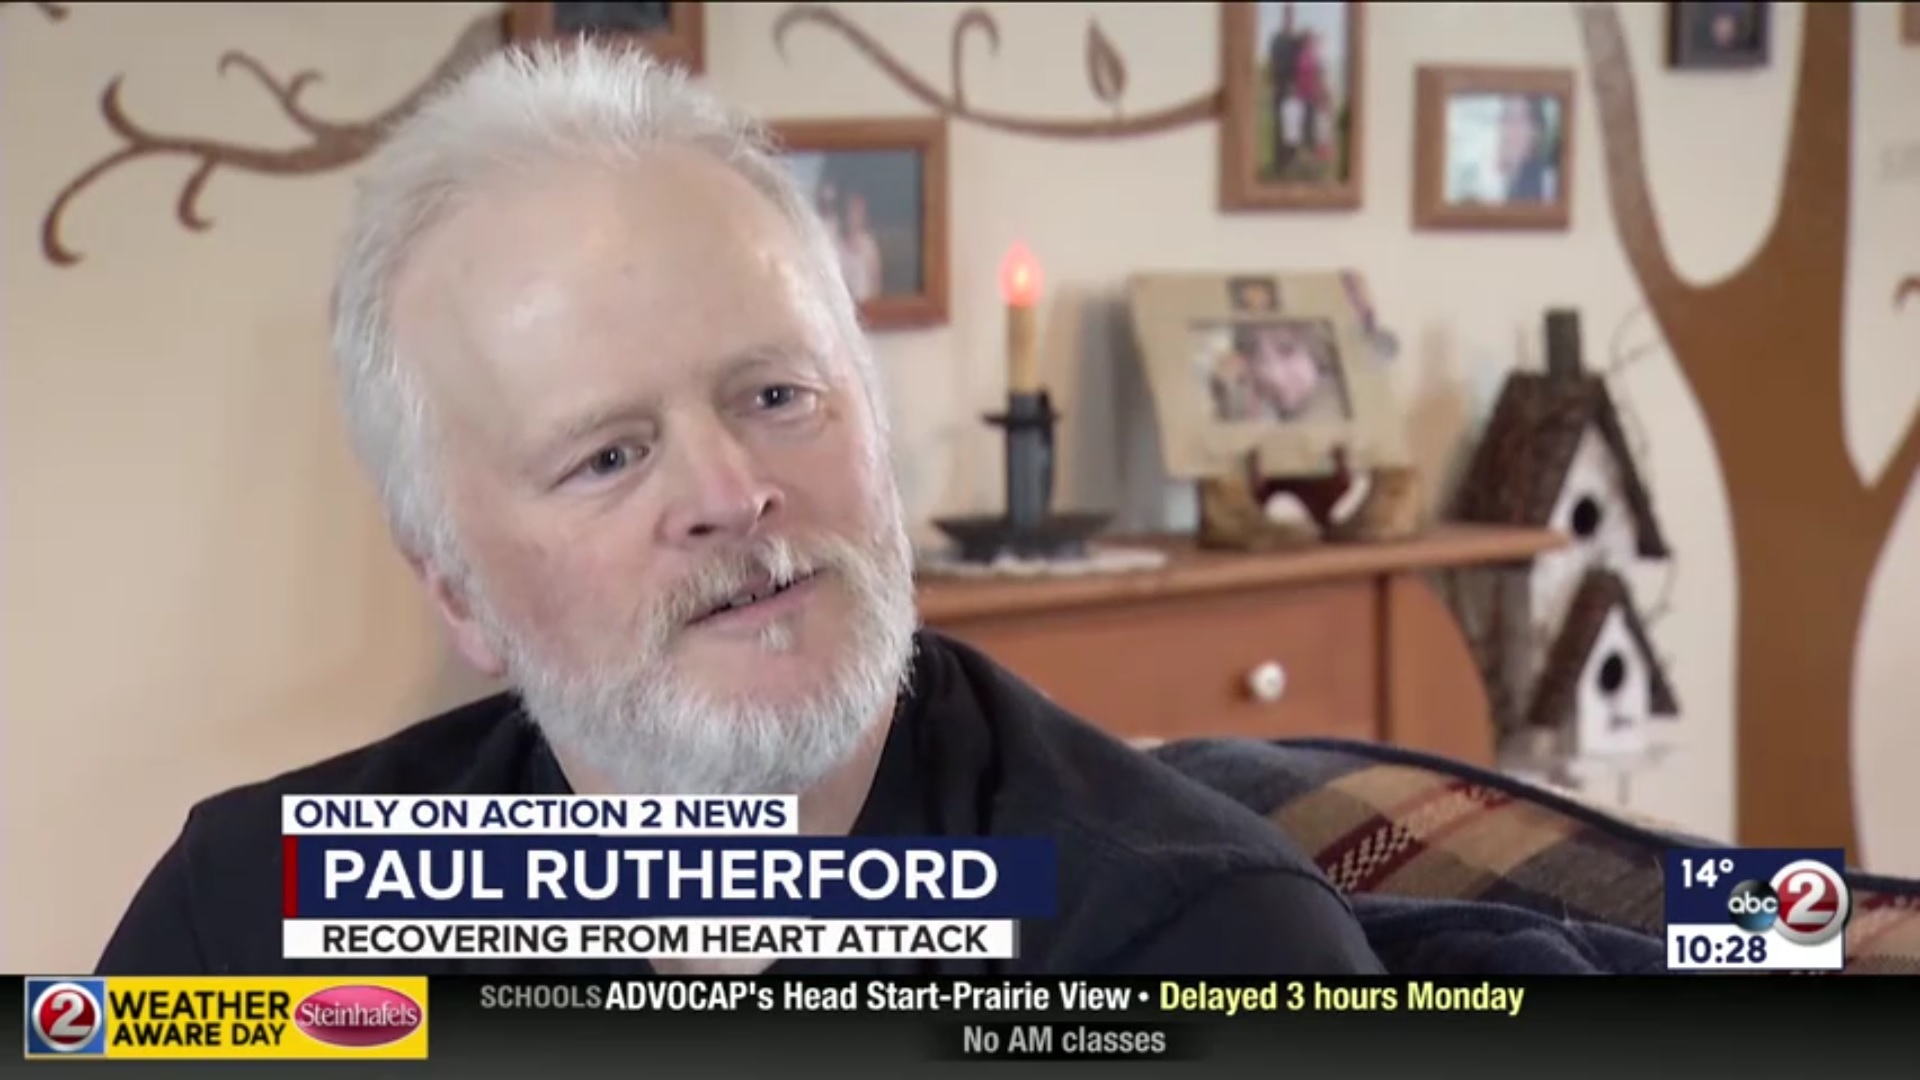 Paul Rutherford: Recovering From Heart Attack